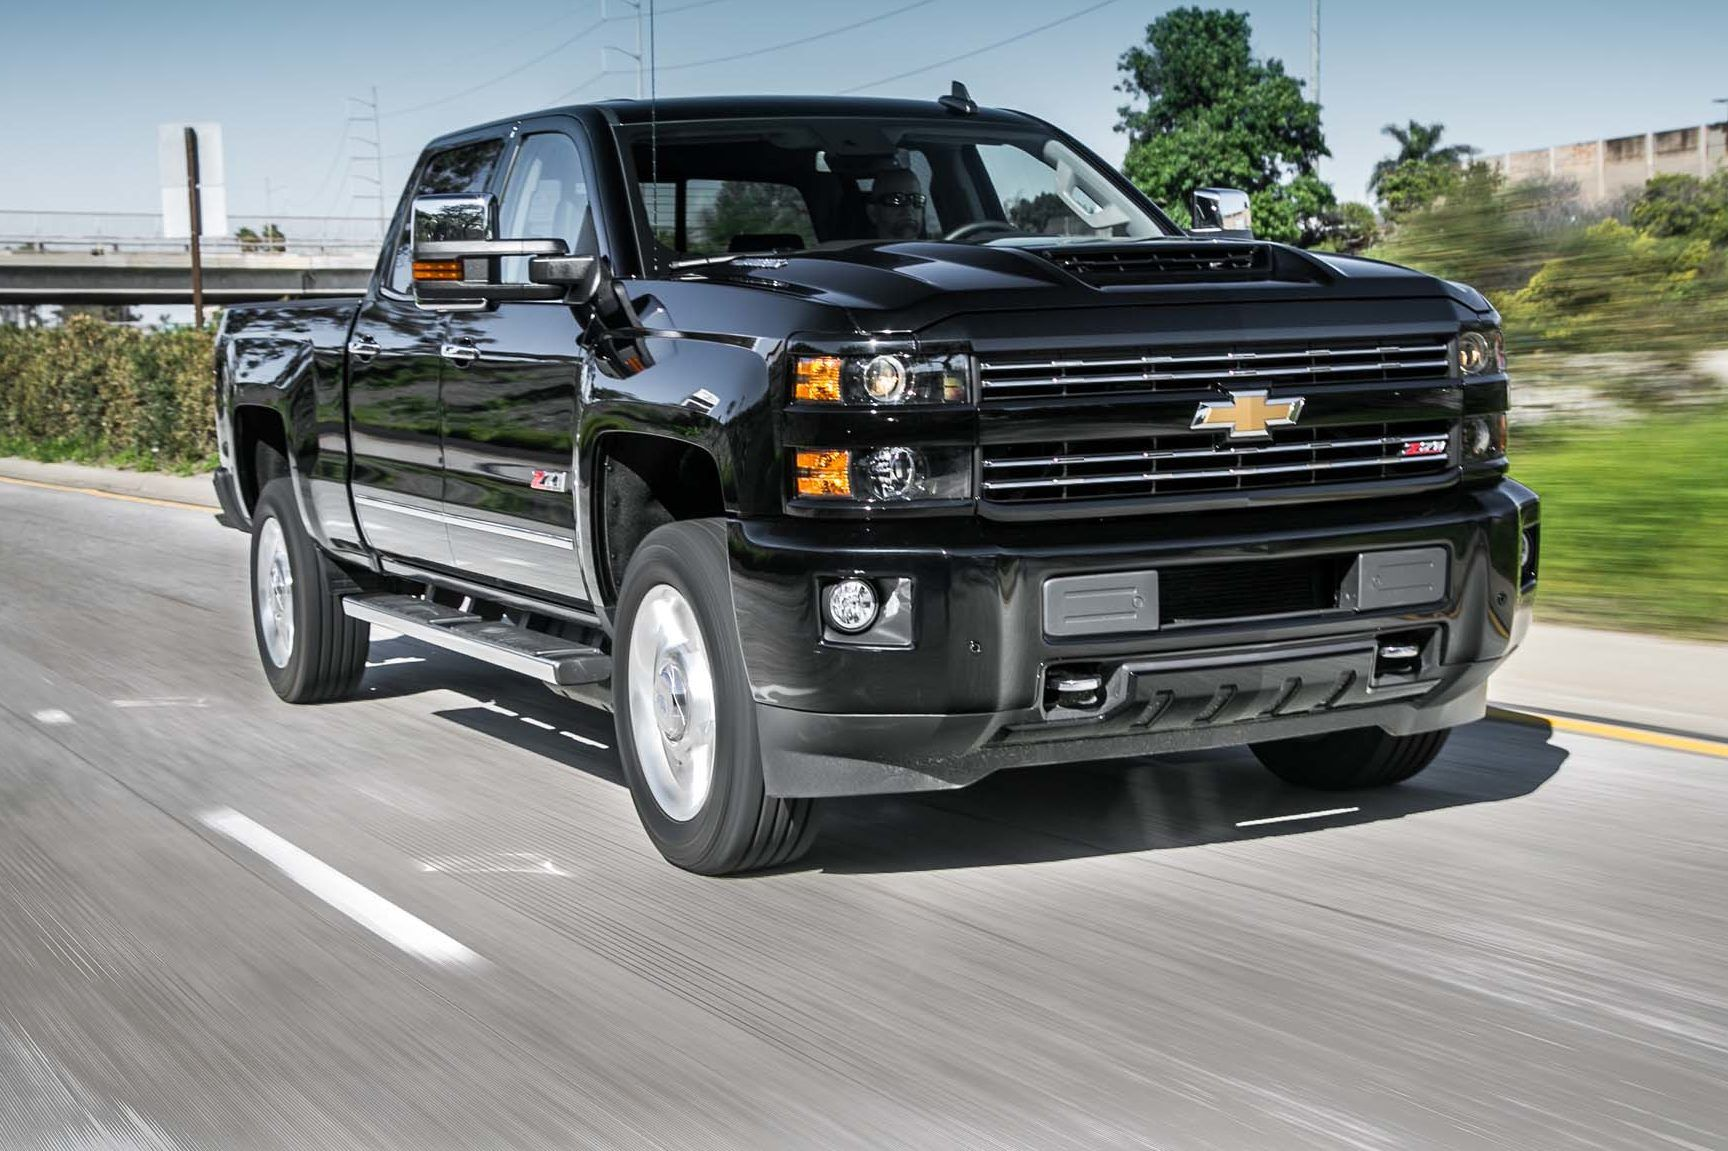 2017 Chevy Silverado 2500HD Carhartt Special Edition Now THIS is a